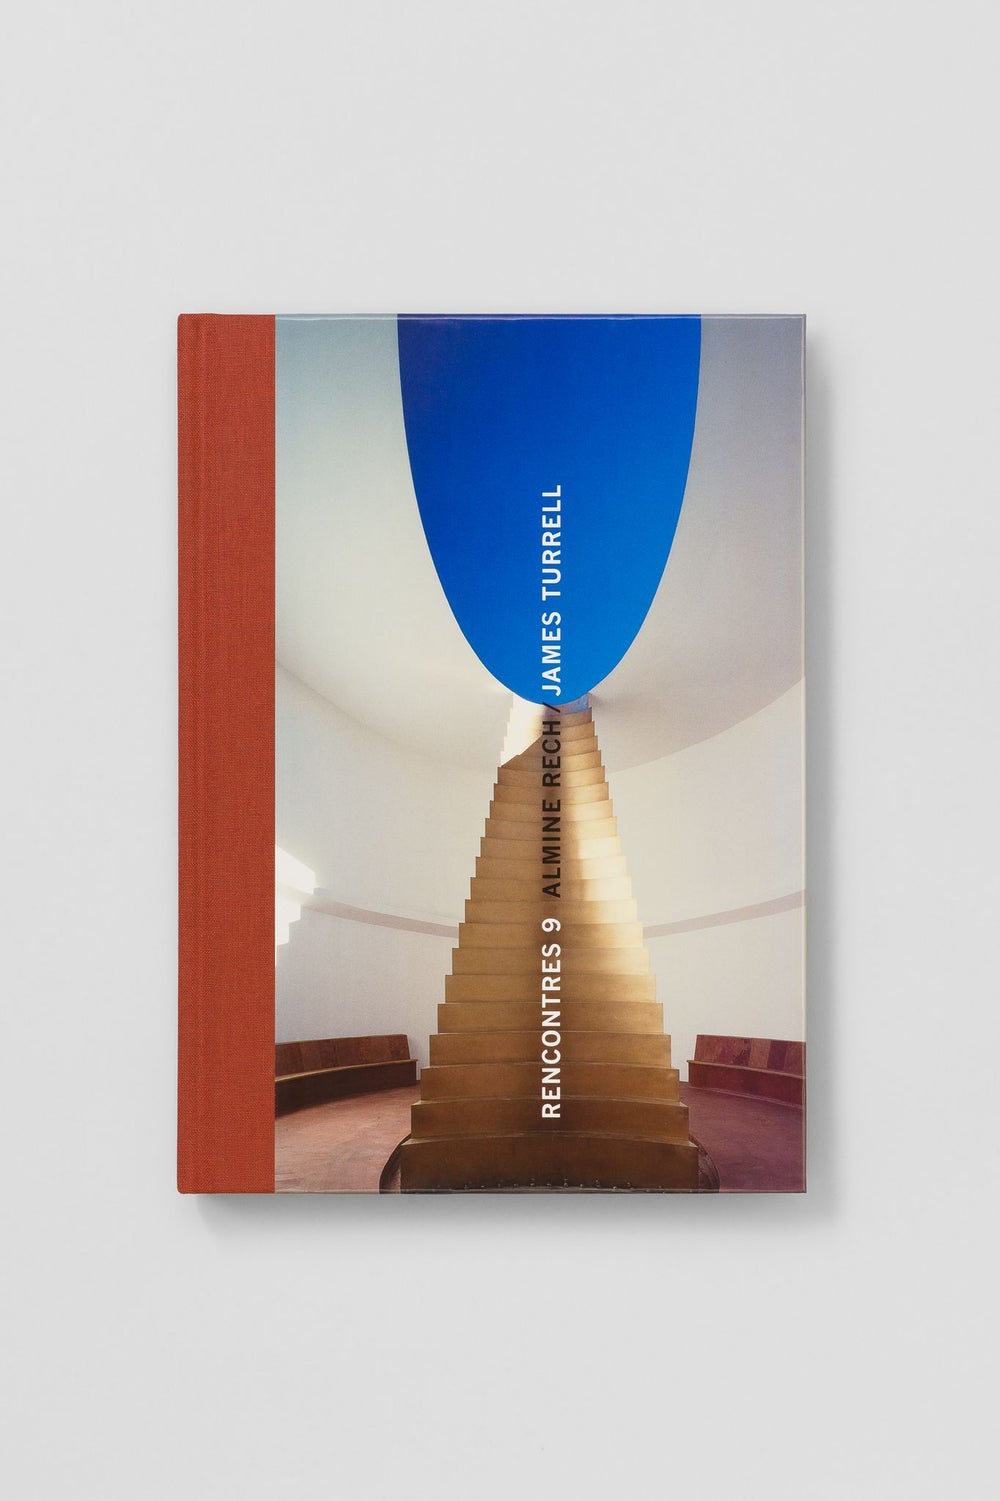 Image of James Turrell - Rencontres 9